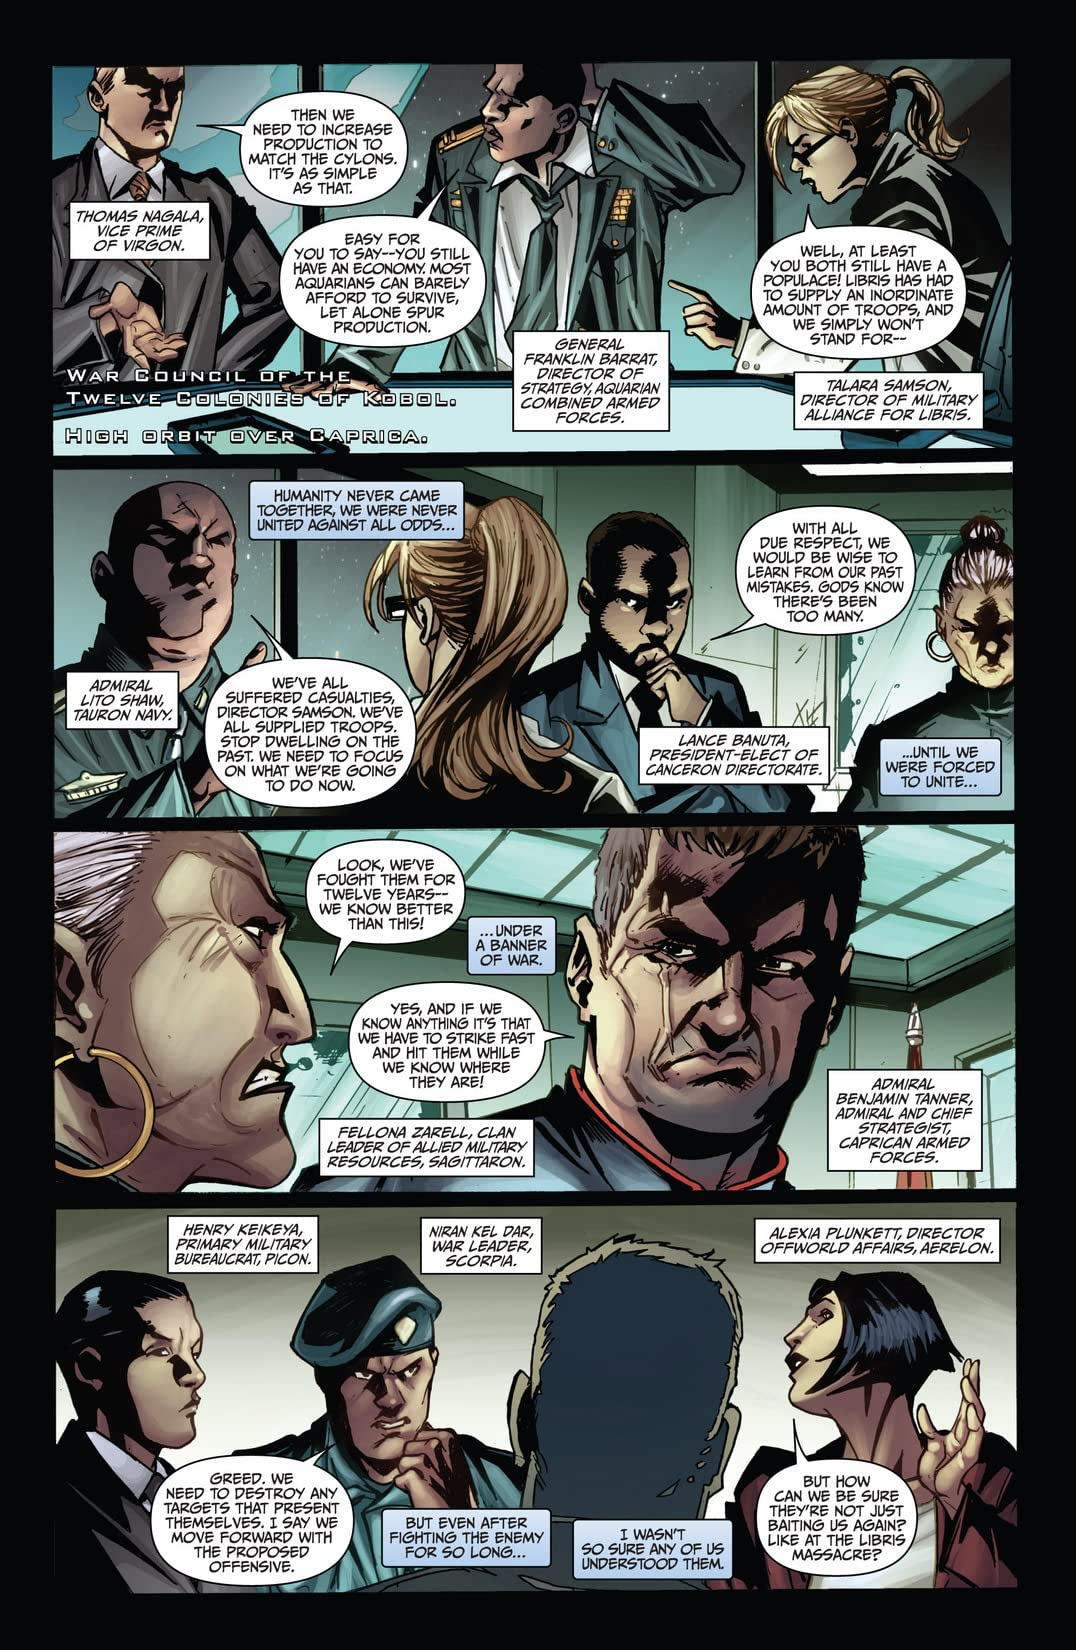 Battlestar Galactica: Cylon War #4 (of 4)